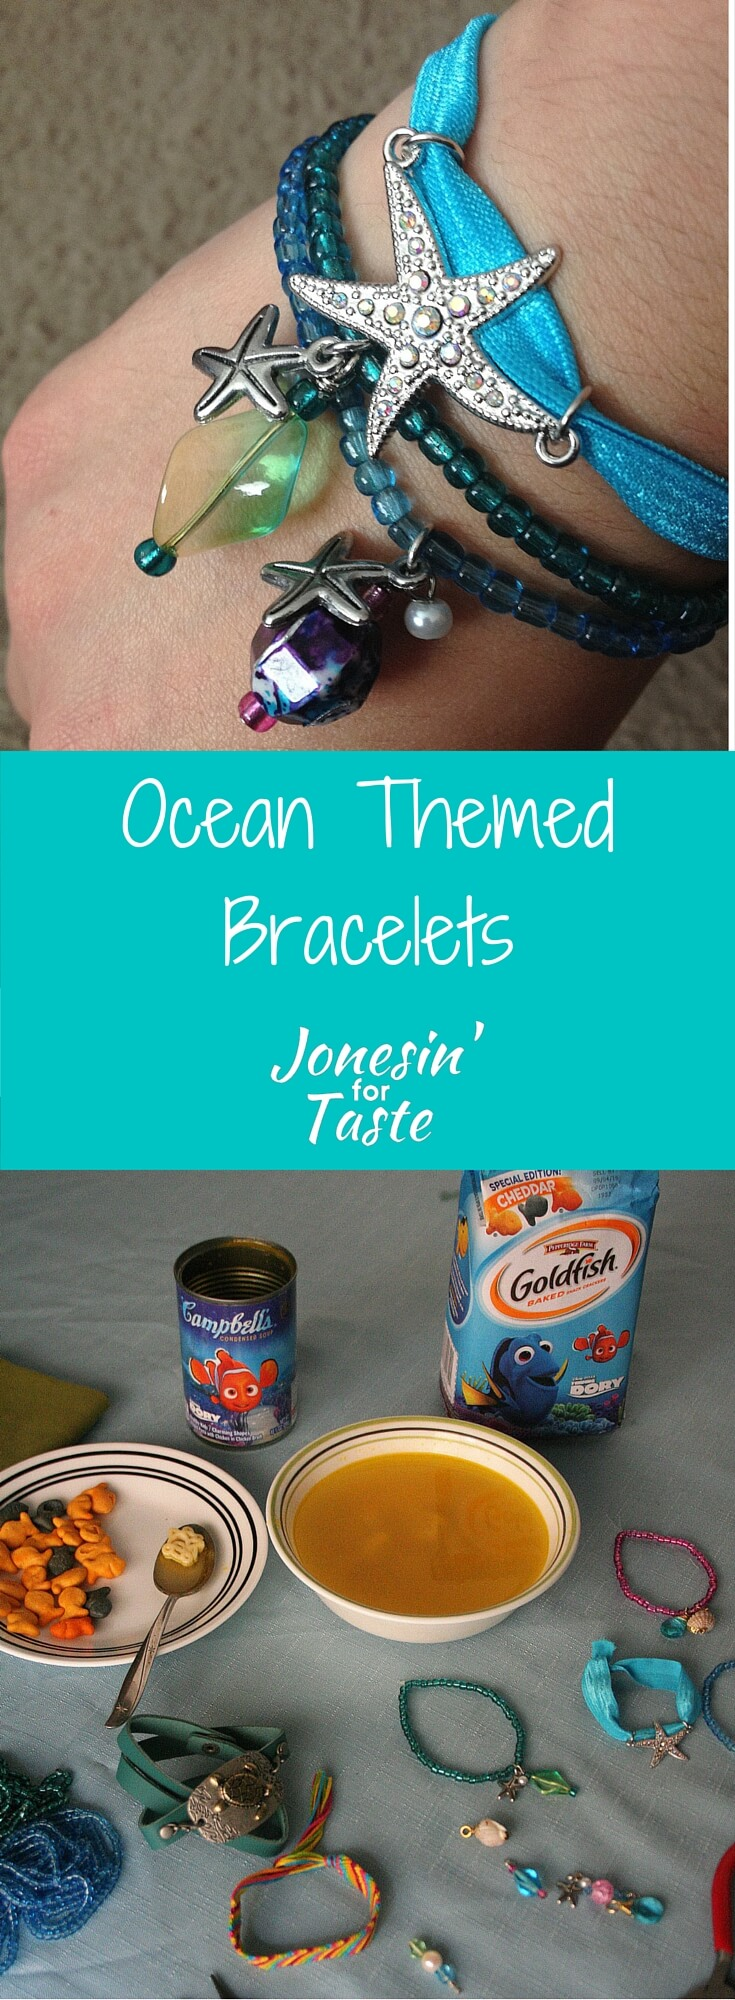 #ad Simple ocean themed bracelets made with starfish charms are a great way to celebrate summer and Disney Pixar's Finding Dory. #jonesinfortaste #easycrafts #kidscrafts #findingdory #summerfun